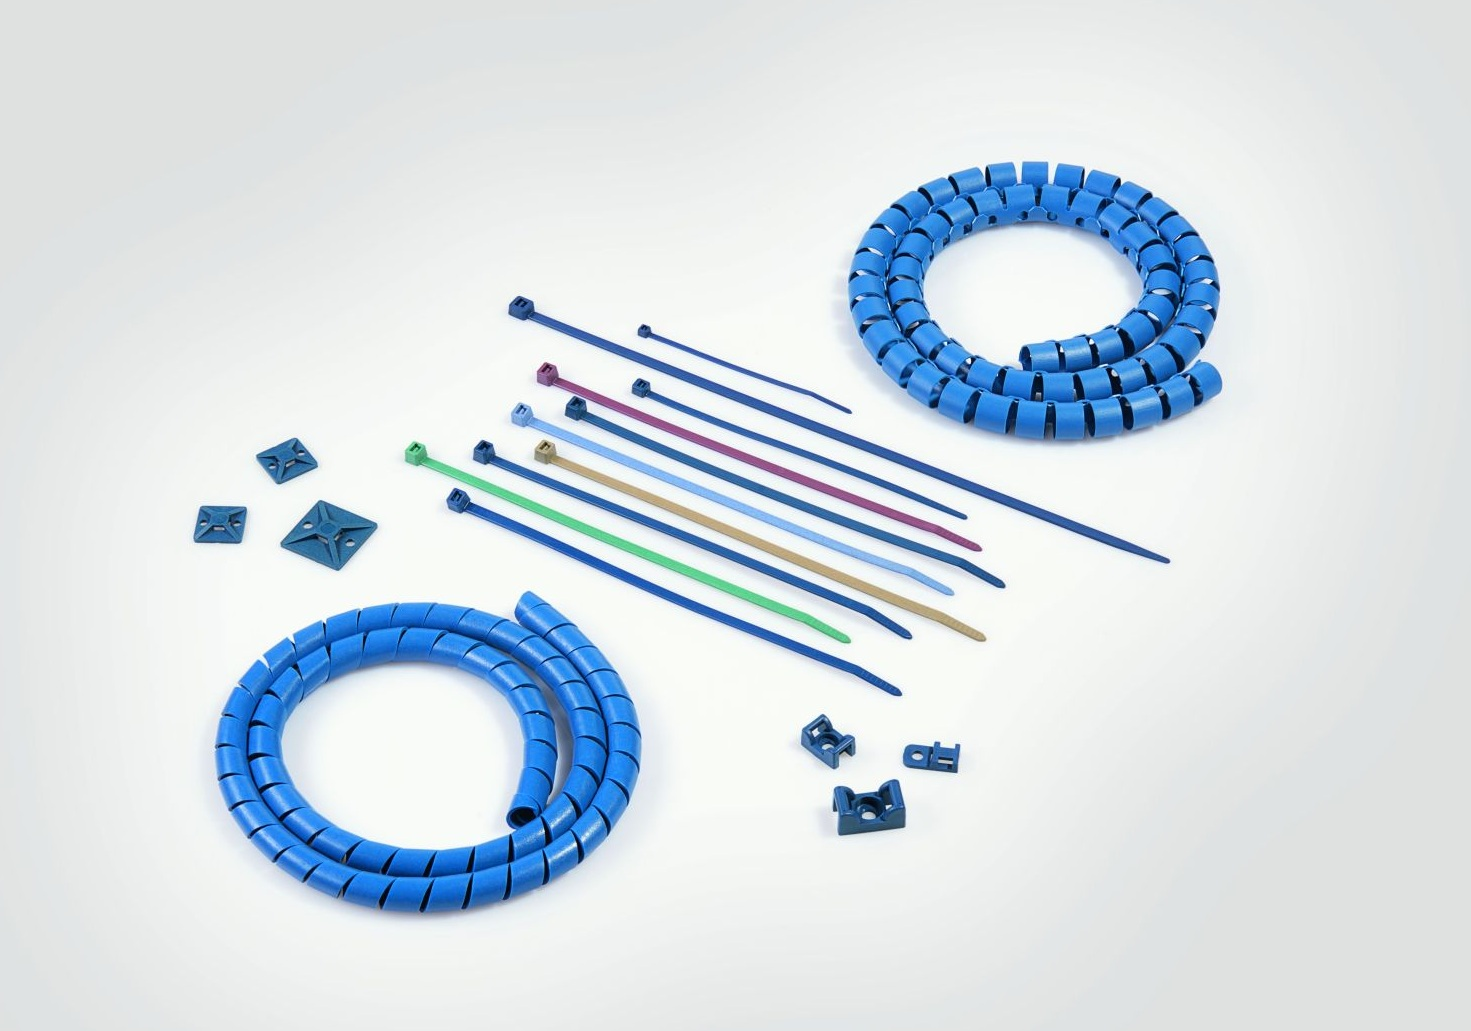 MCT/MCTS cable ties